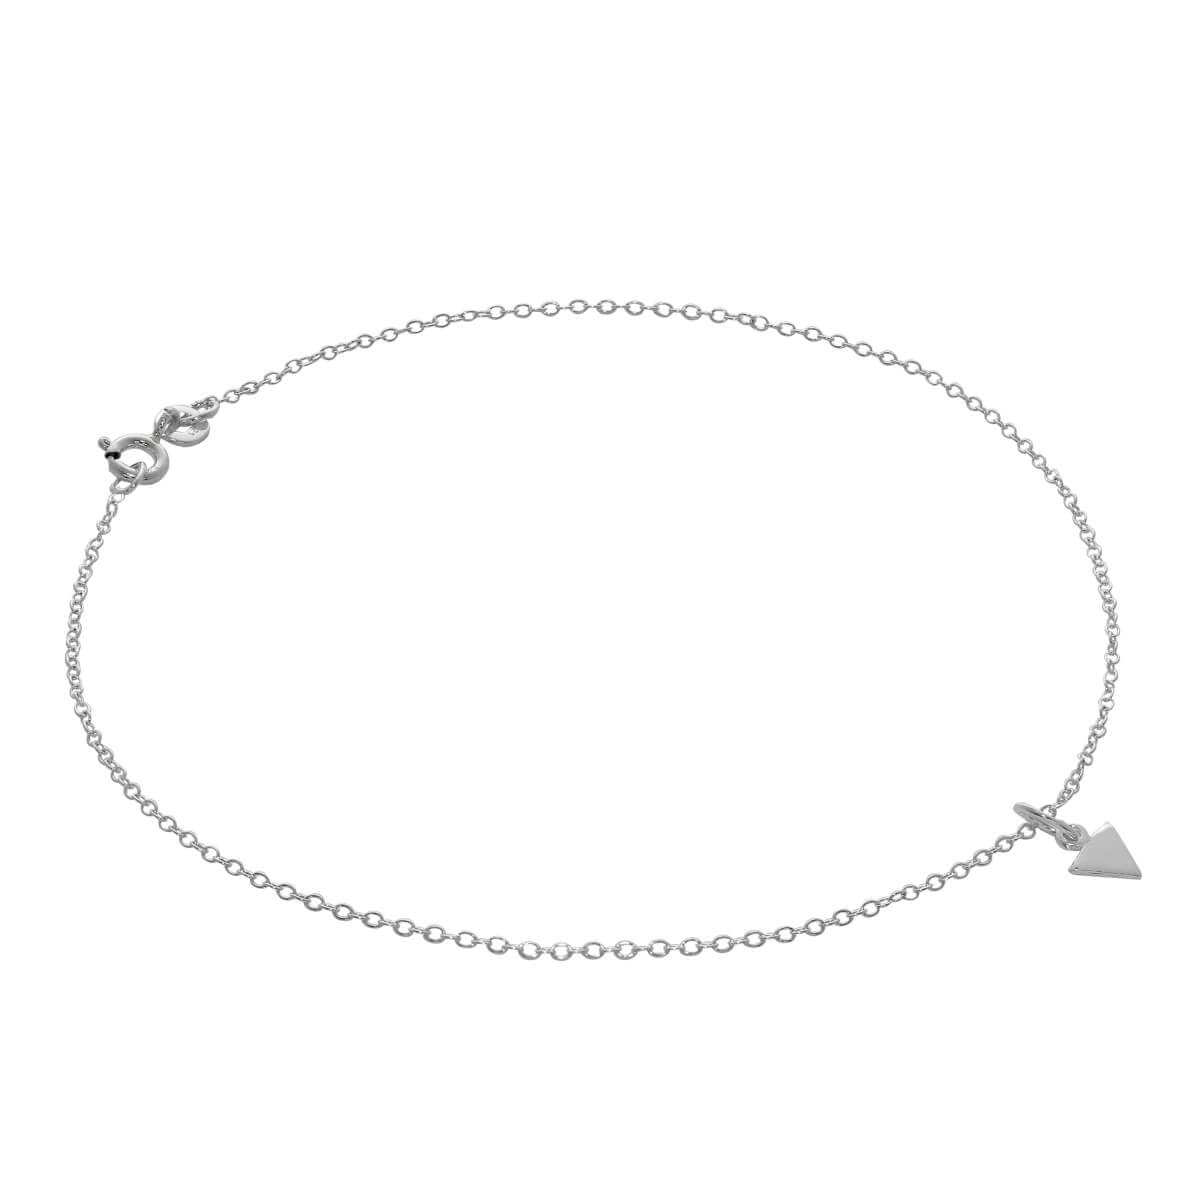 Sterling Silver Flat Triangle Spike Belcher Anklet - 10 Inches